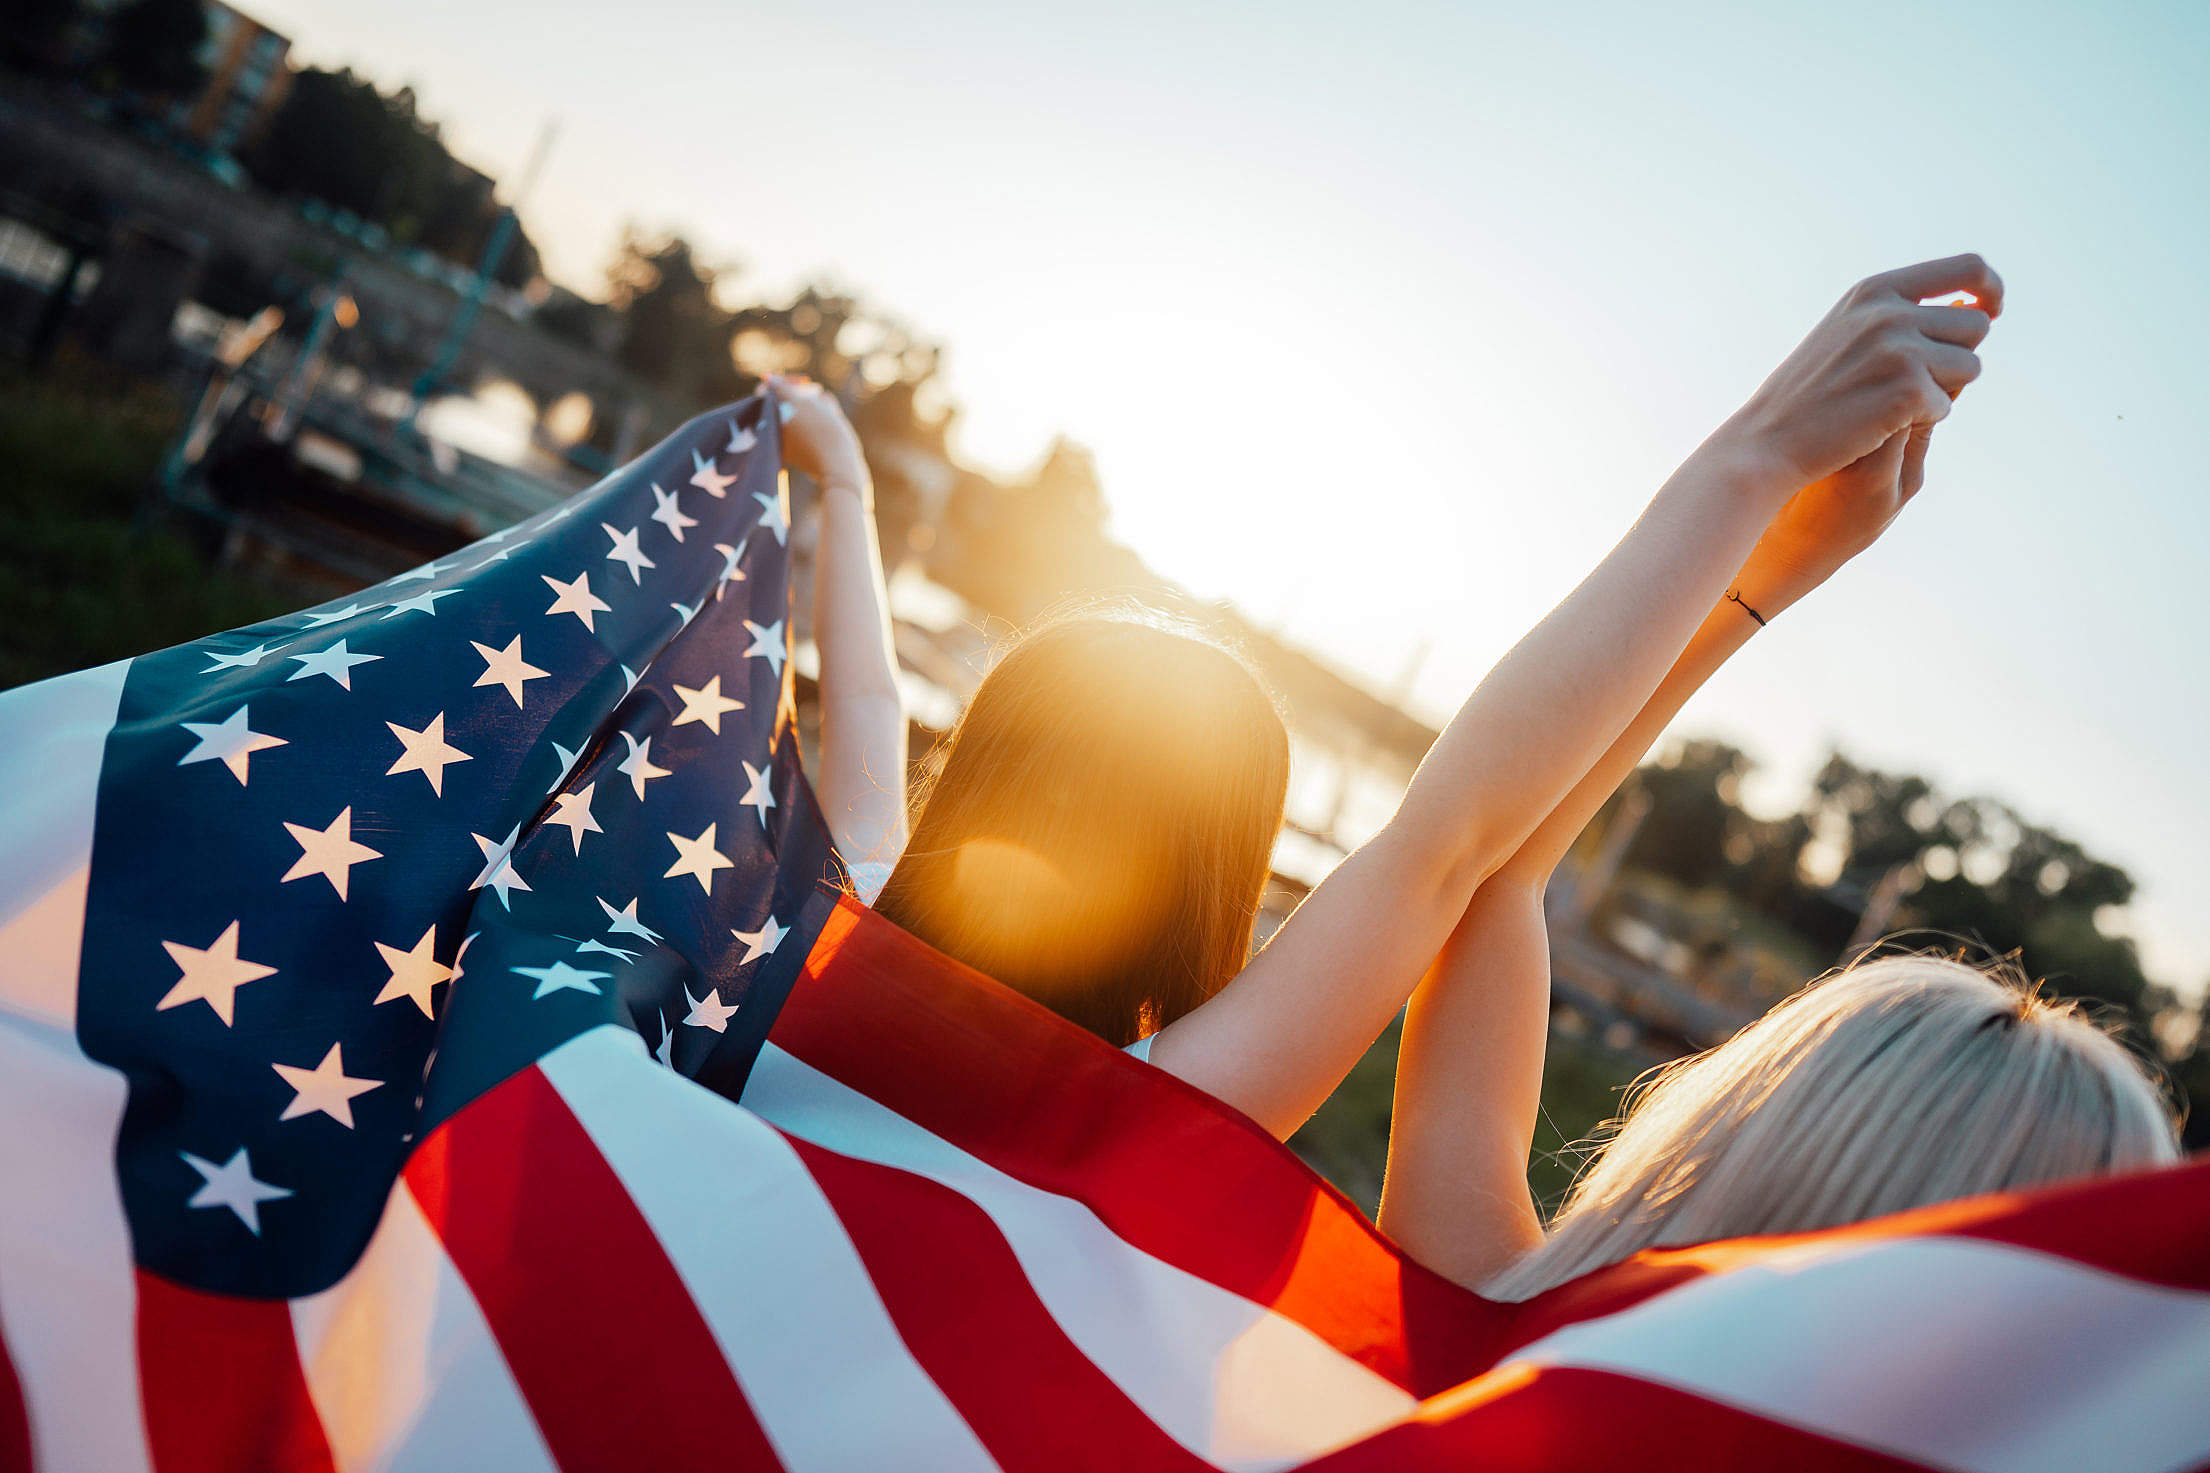 Two Happy Women Walking with USA Flag on Independence Day Free Stock Photo